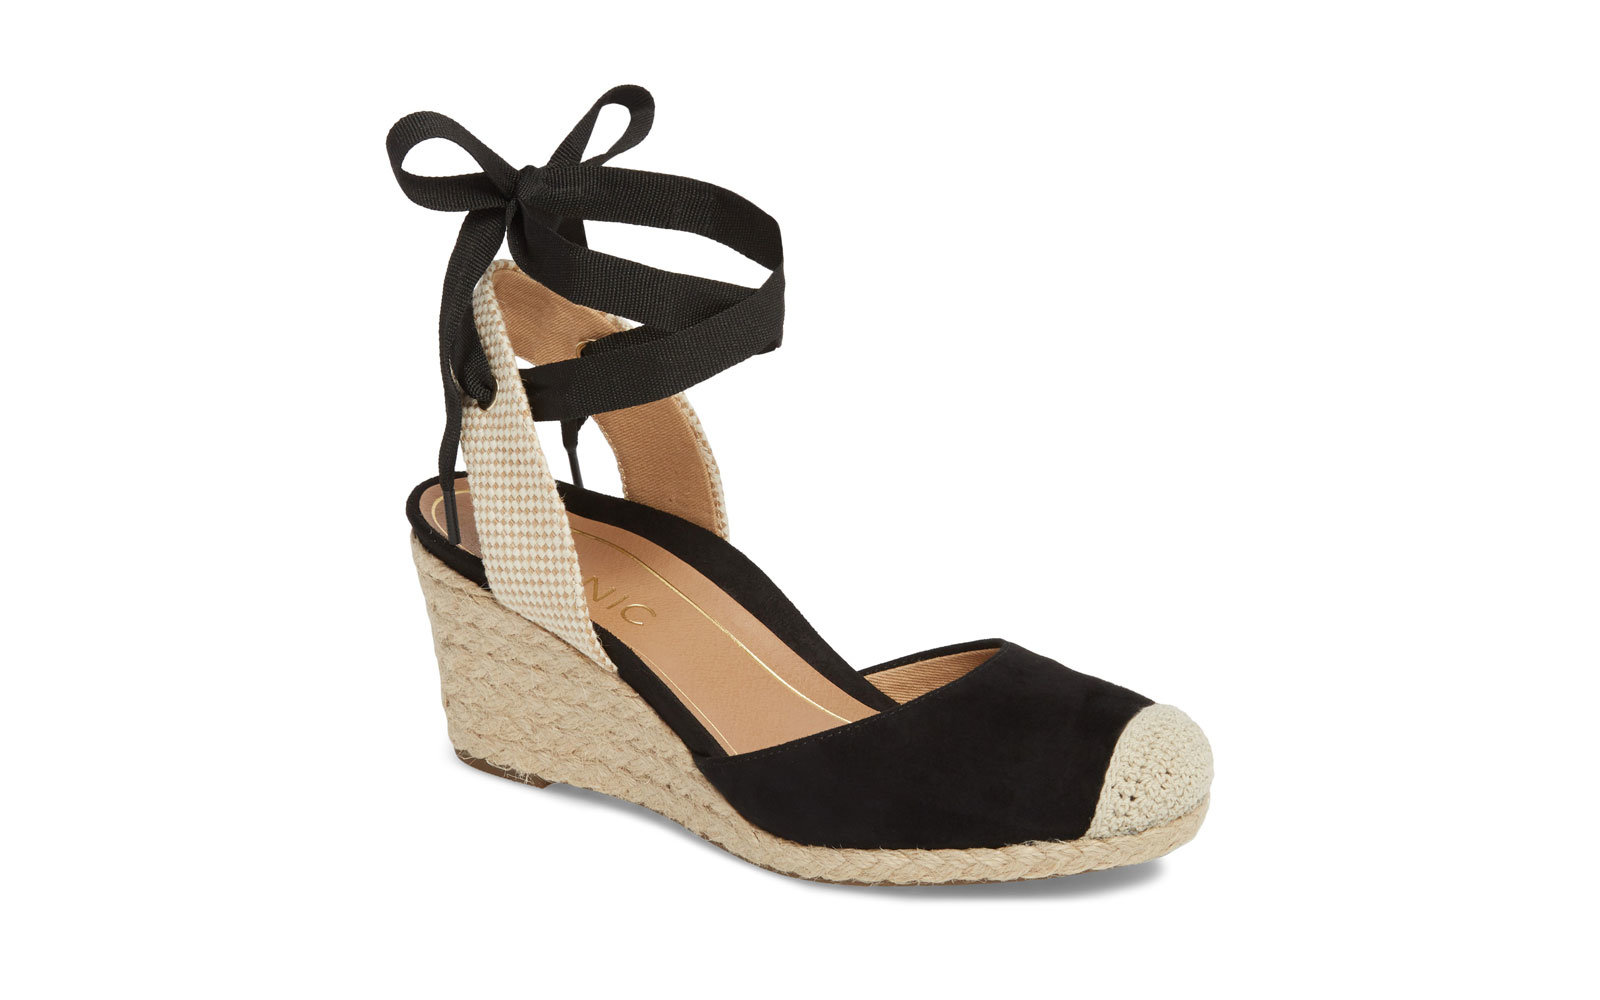 b9b63eb79 The Best Heels to Wear While Traveling   Travel + Leisure